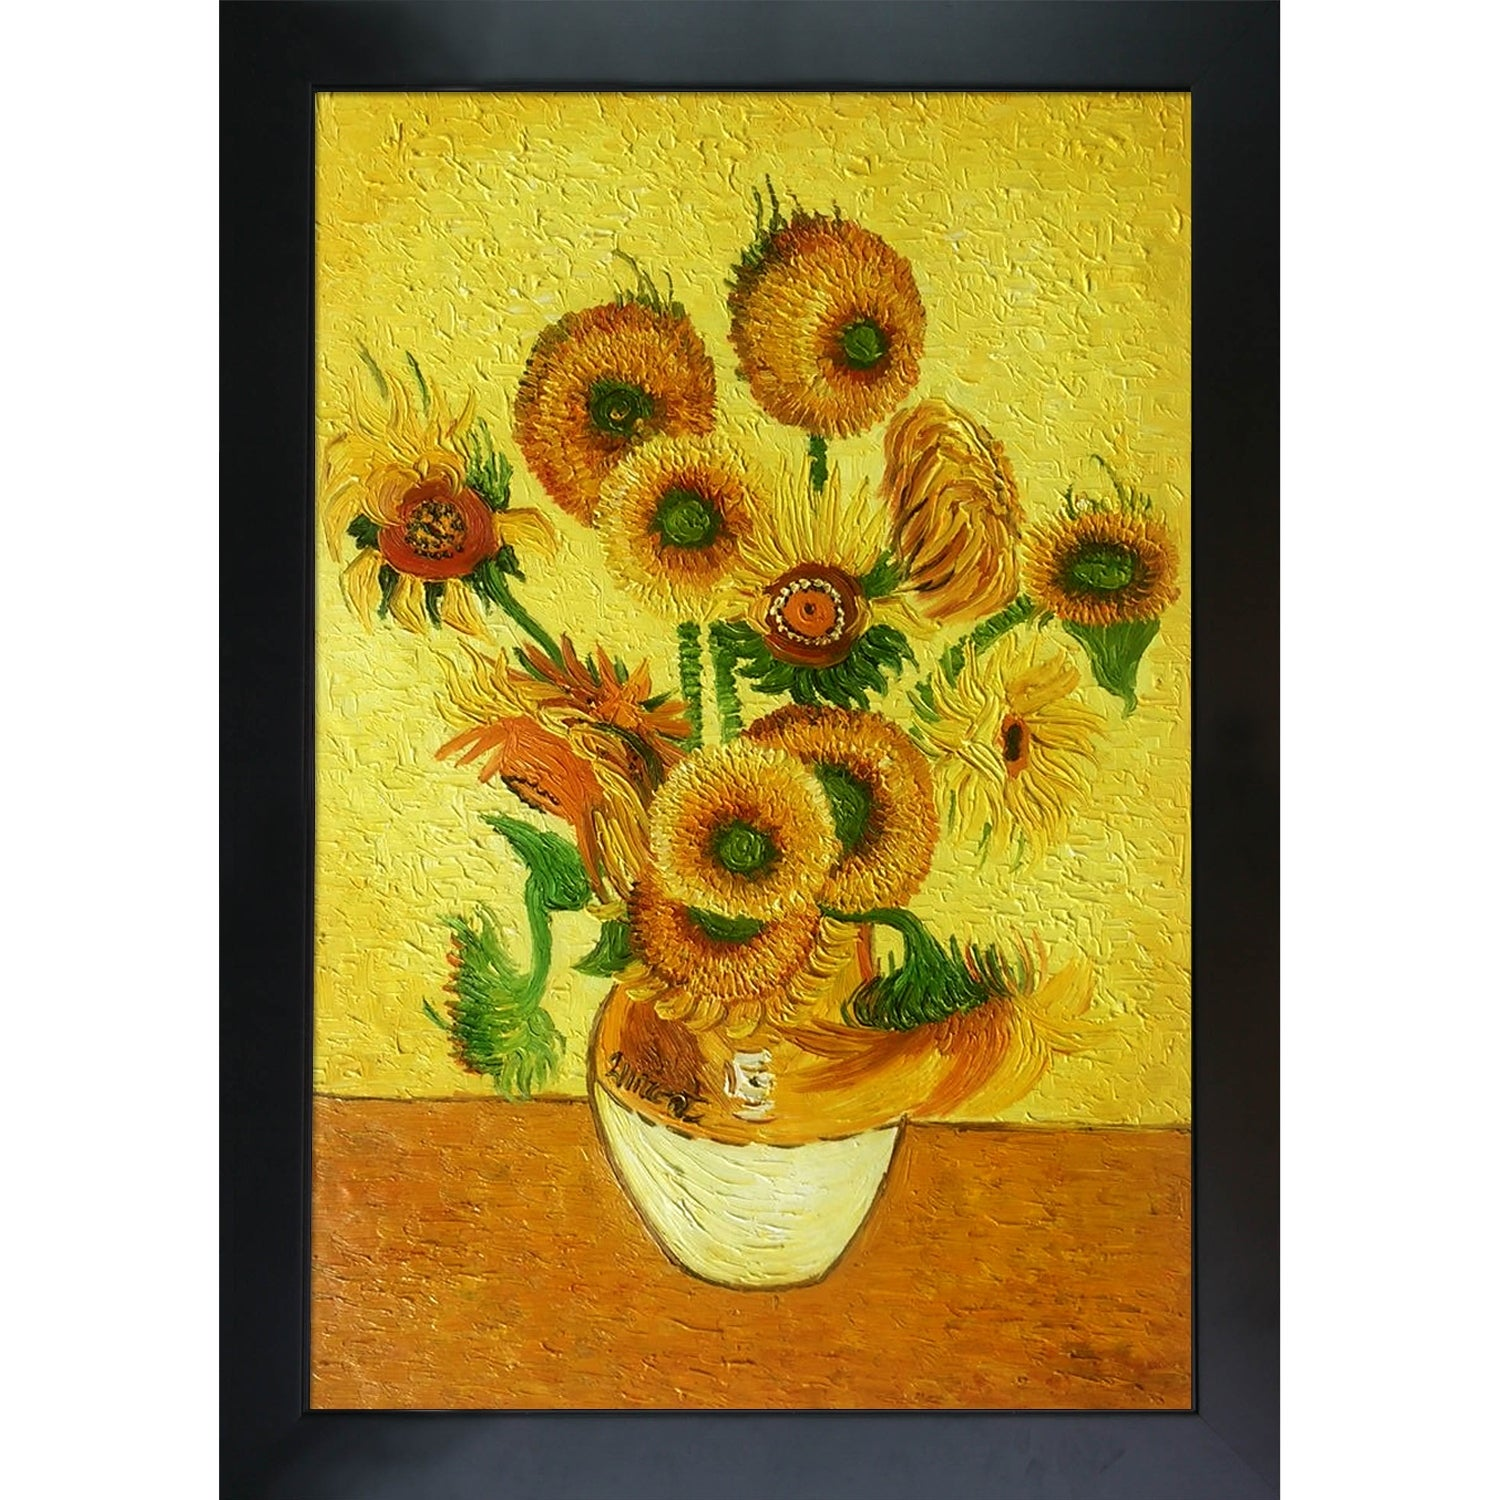 Wall Art Repro Made in U.S.A Giclee Prints Vase with Sunflowers by van Gogh